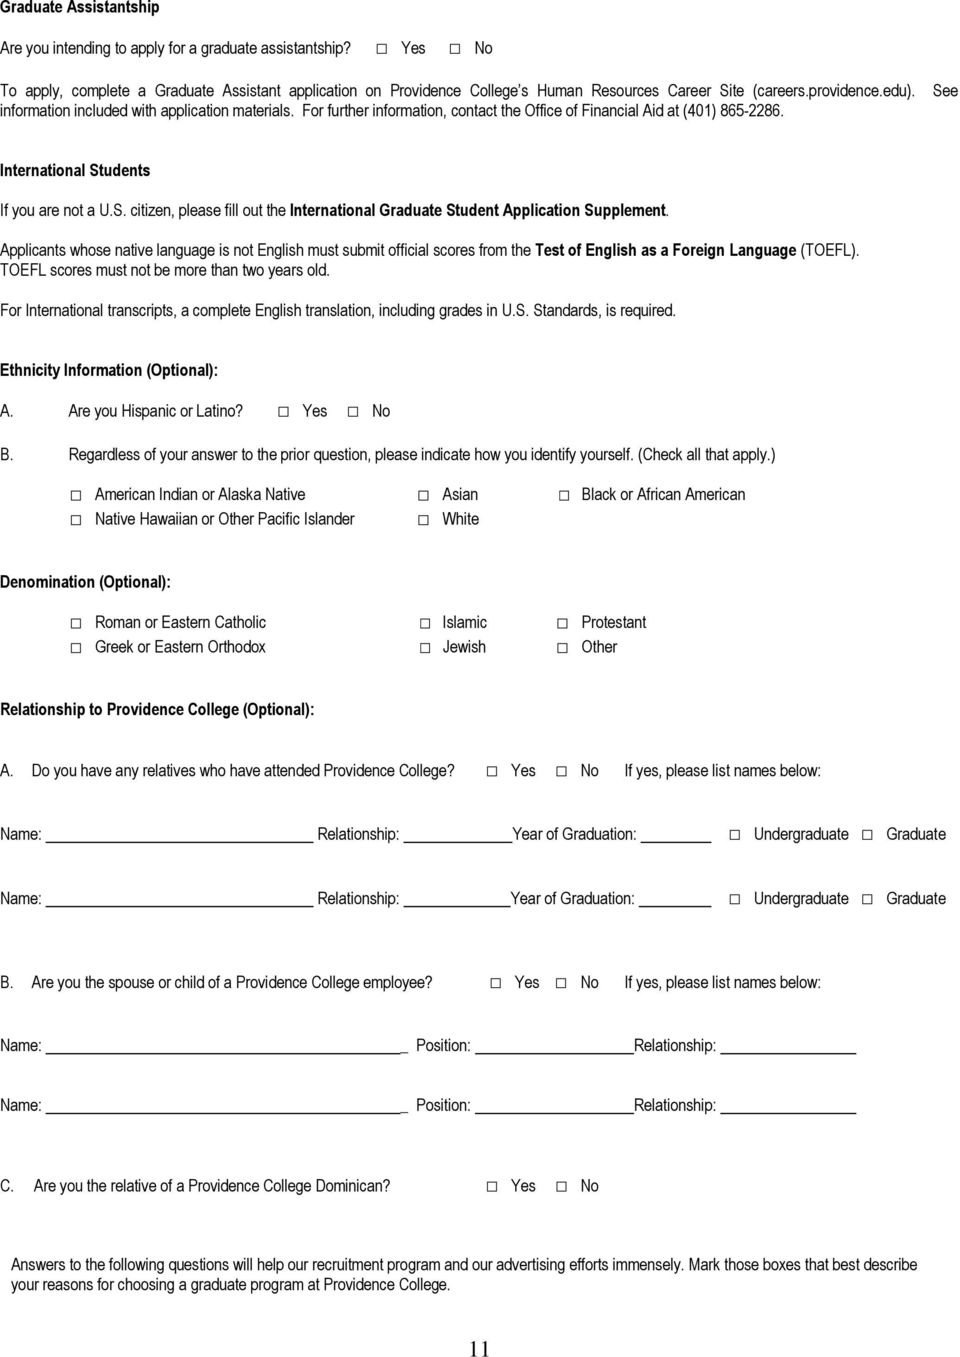 e International Students If you are not a U.S. citizen, please fill out the International Graduate Student Application Supplement.